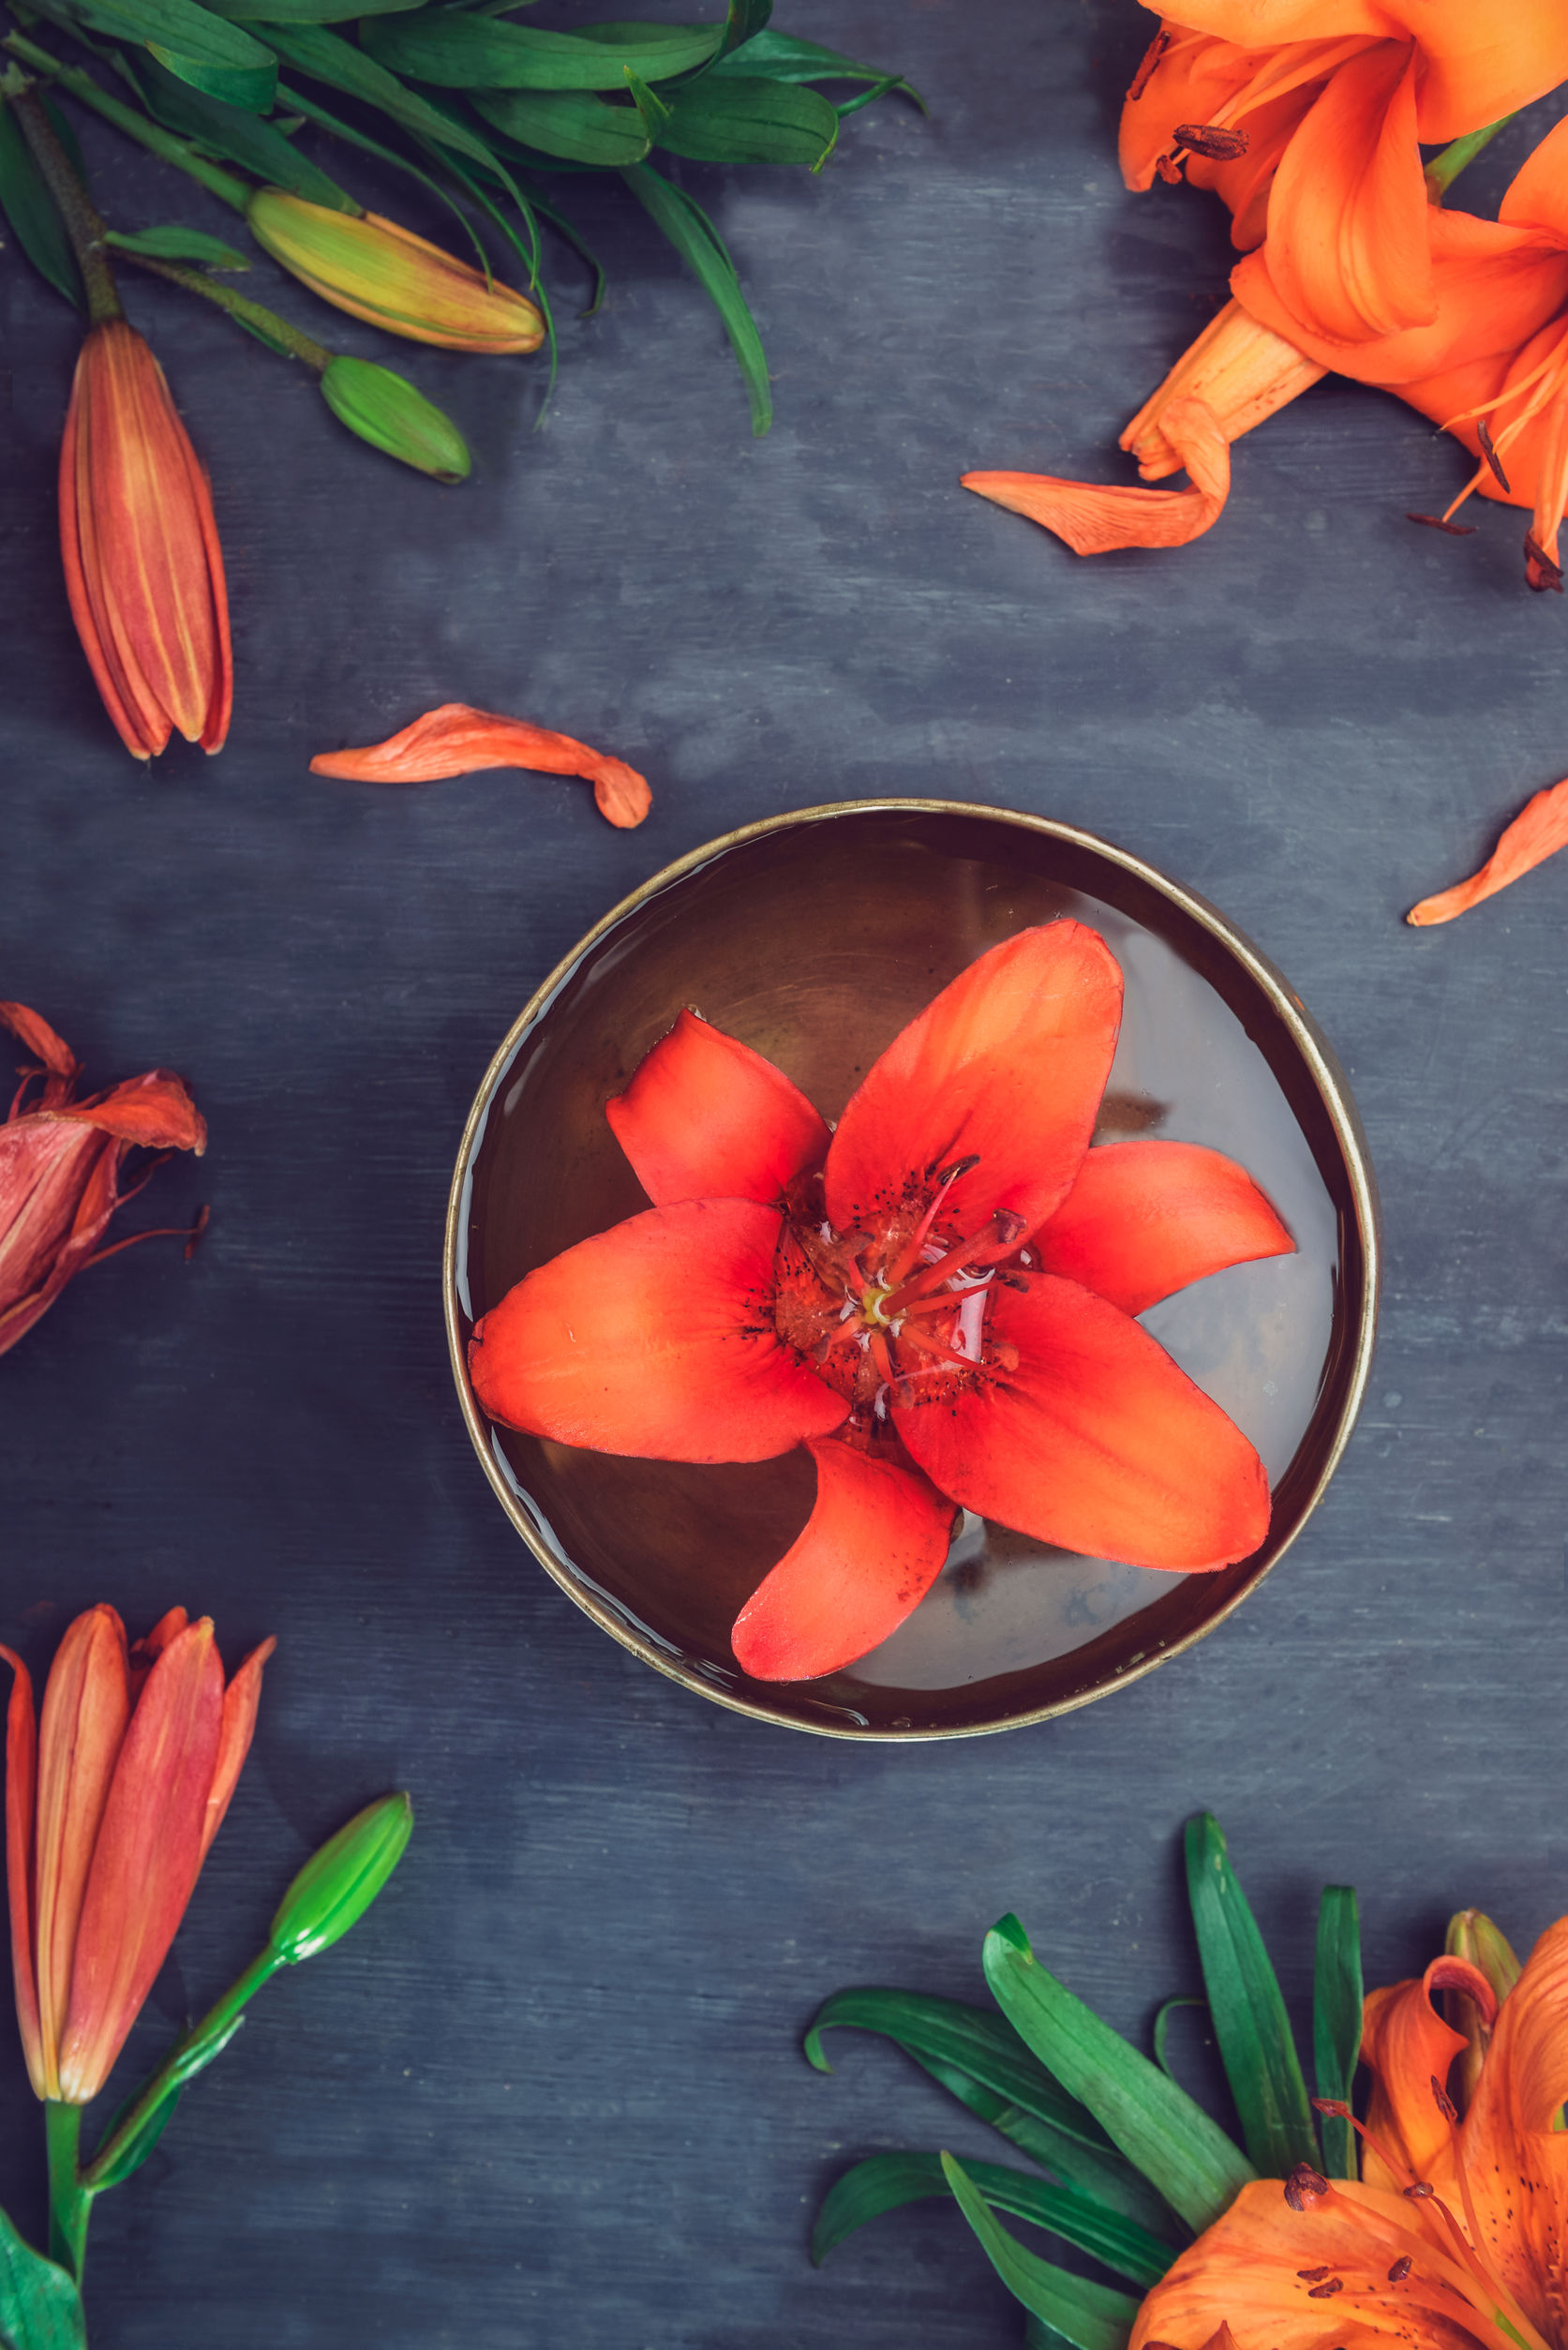 Tibetan singing bowl with floating lily inside. Burning candles, lily flowers and petals on the black wooden background. Meditation and Relax. Exotic massage, spa procedure. Selective focus